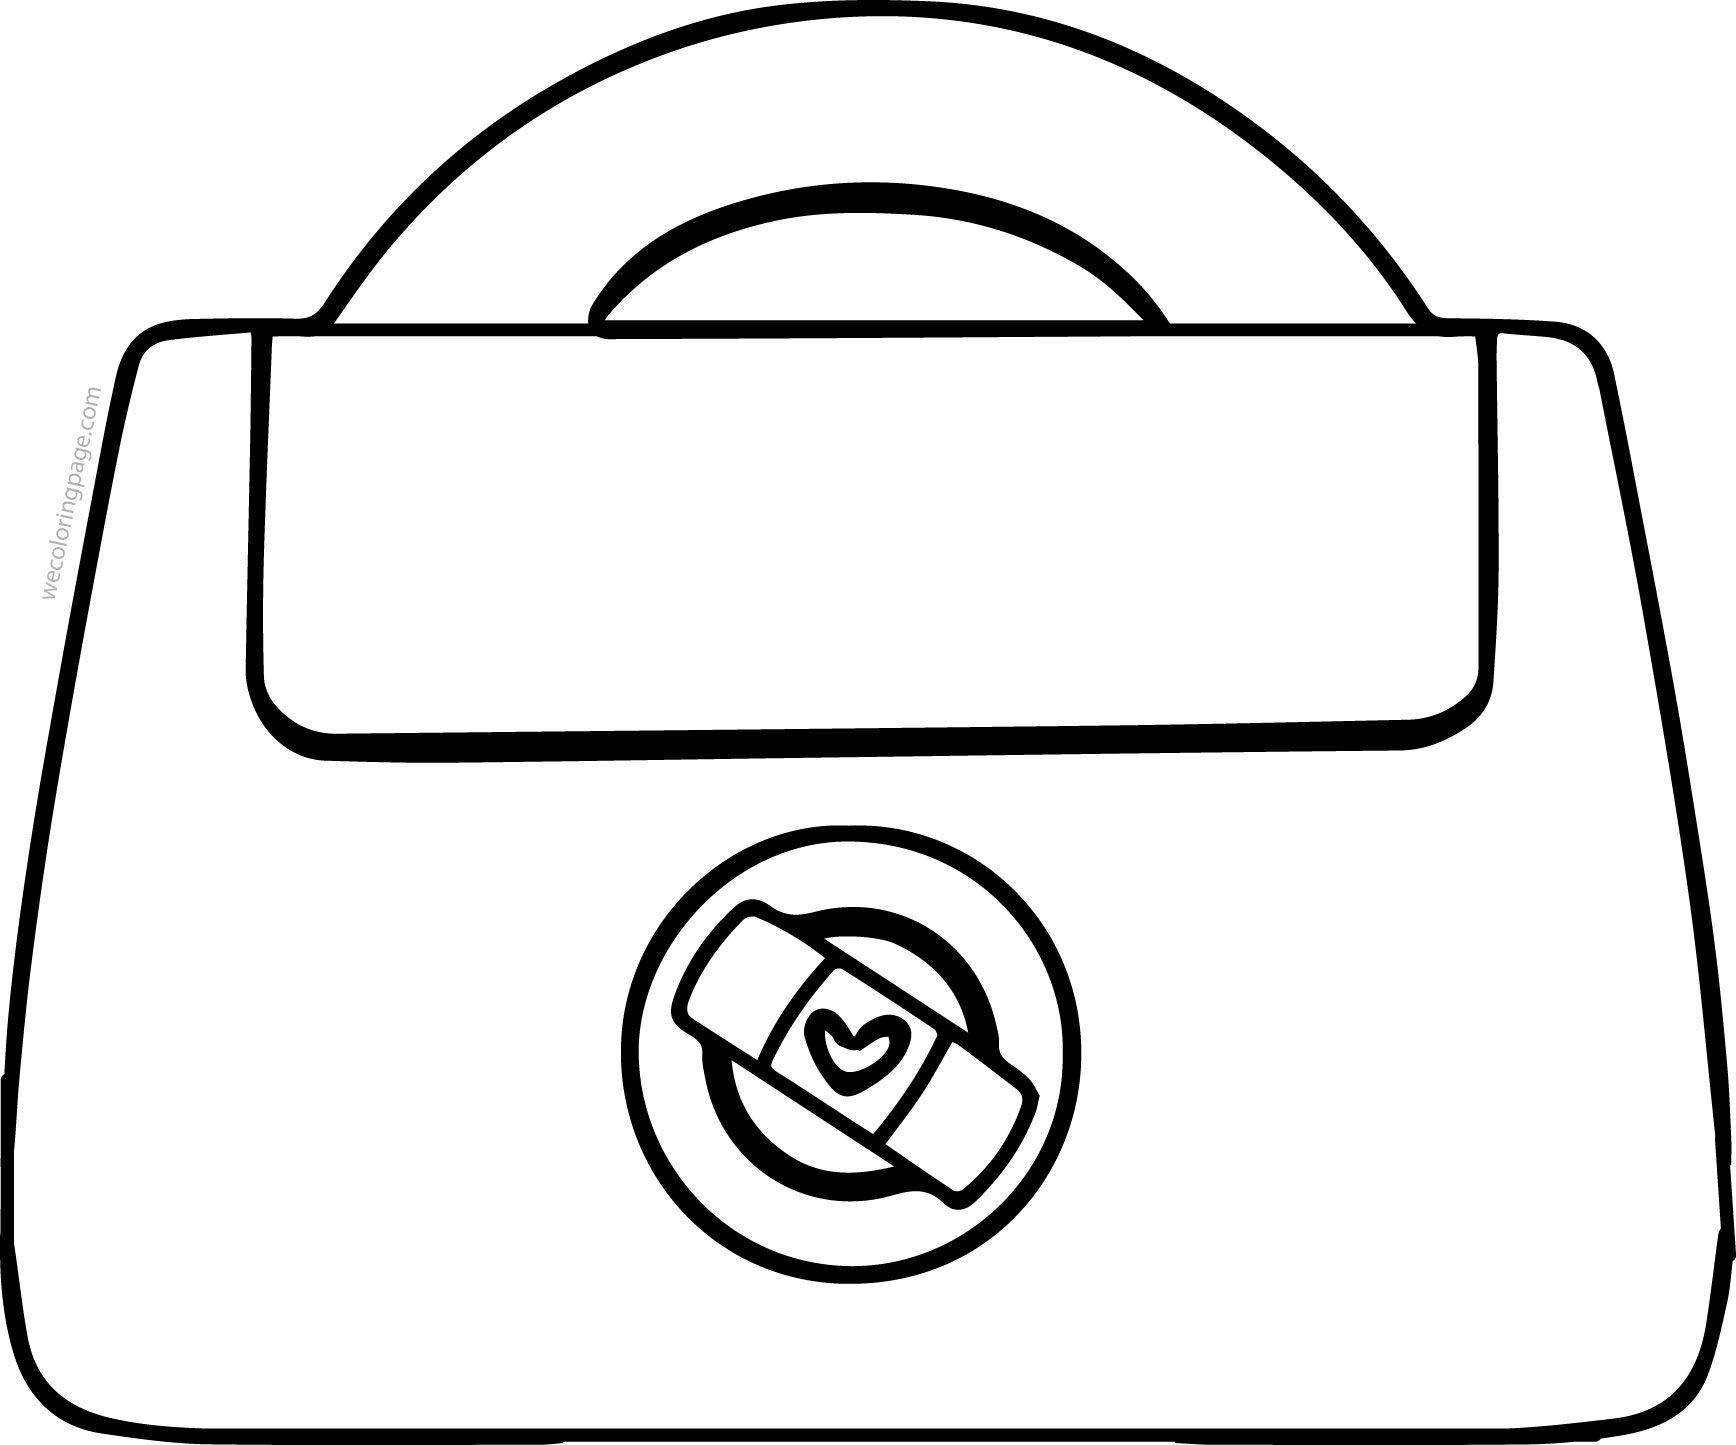 Doc Mcstuffins Medical Bag Coloring Page Jpg 1736 1445 With